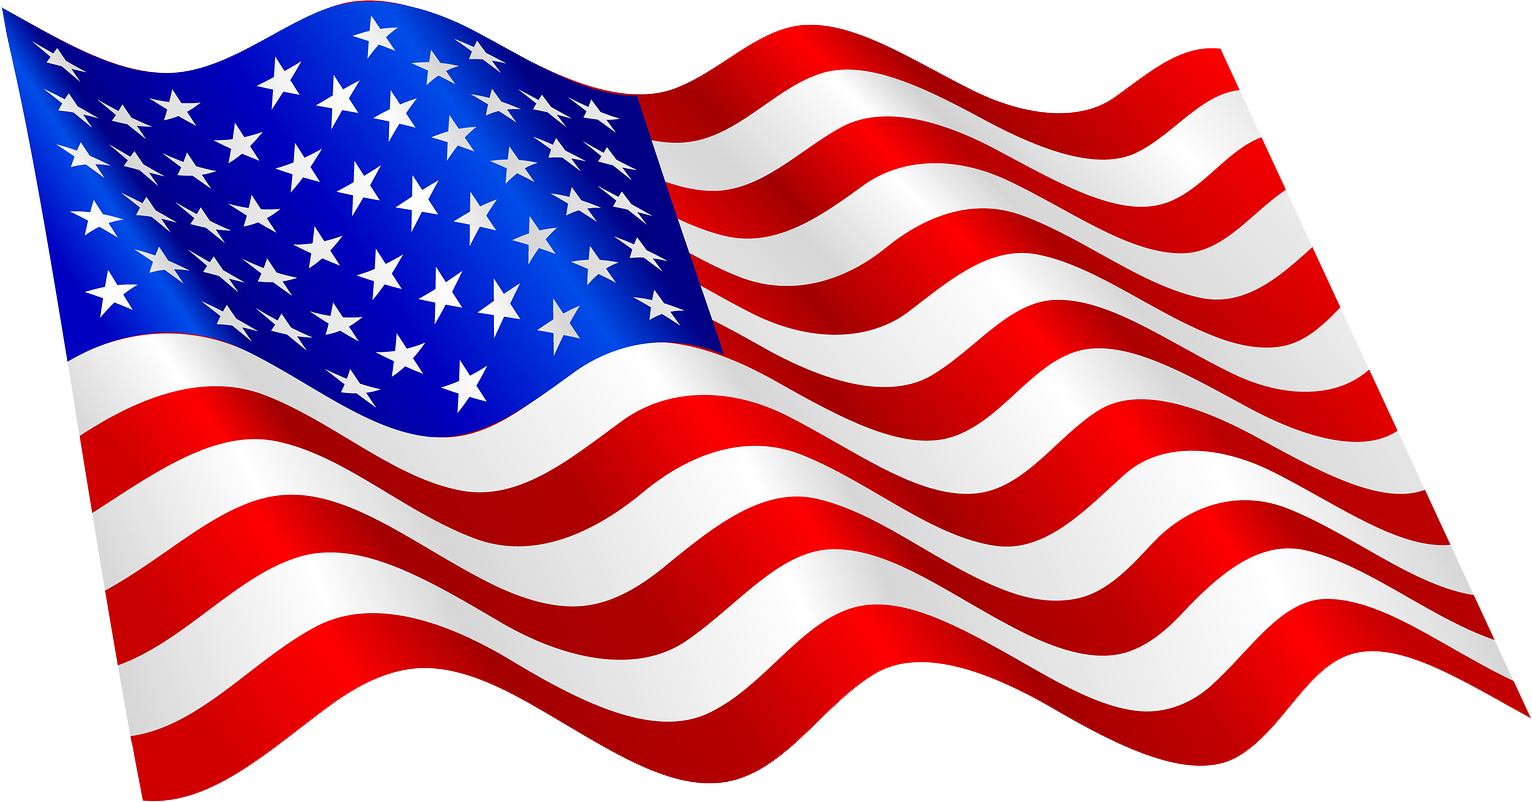 American flag png file. United states of america clip black and white download